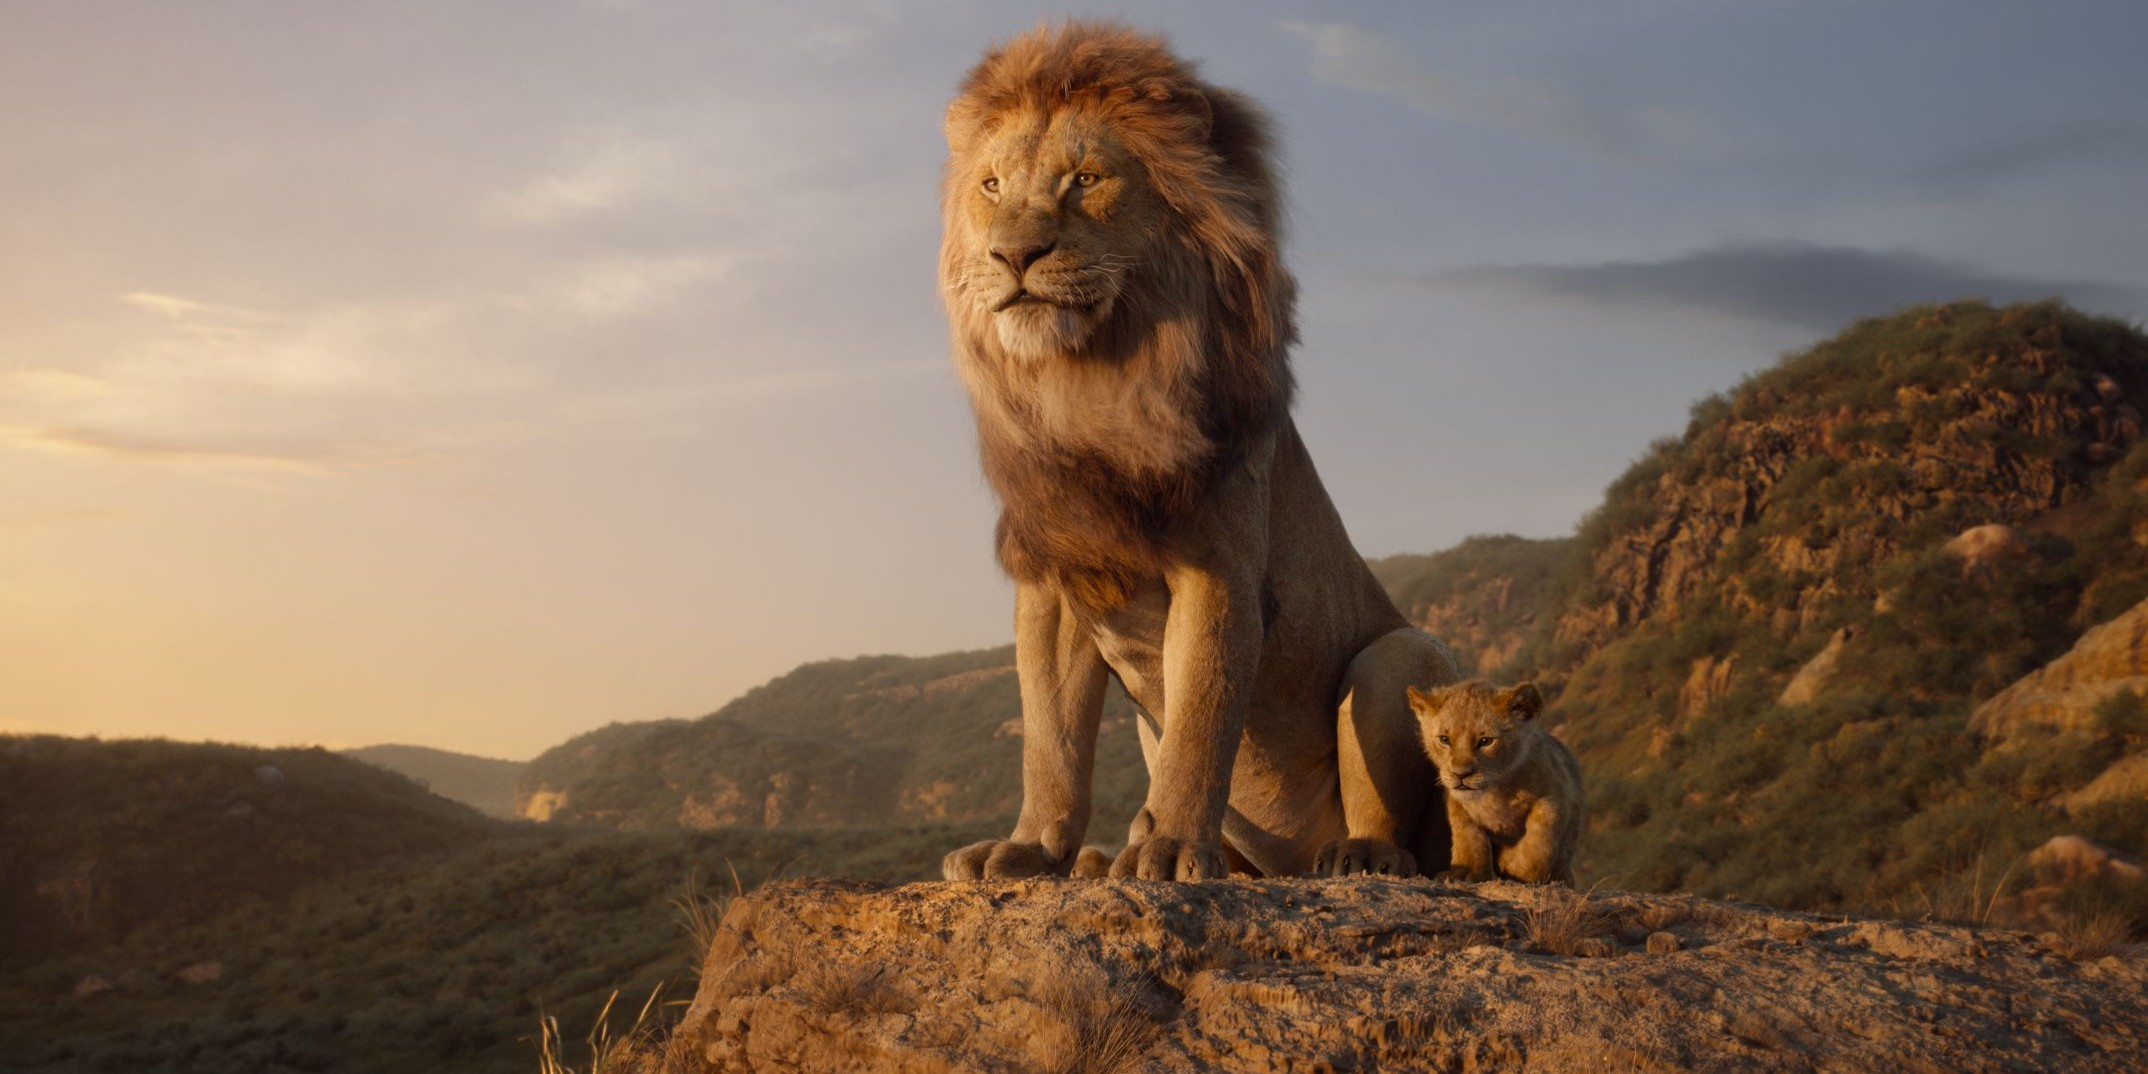 The Lion King new Trailer is Out: New Updates